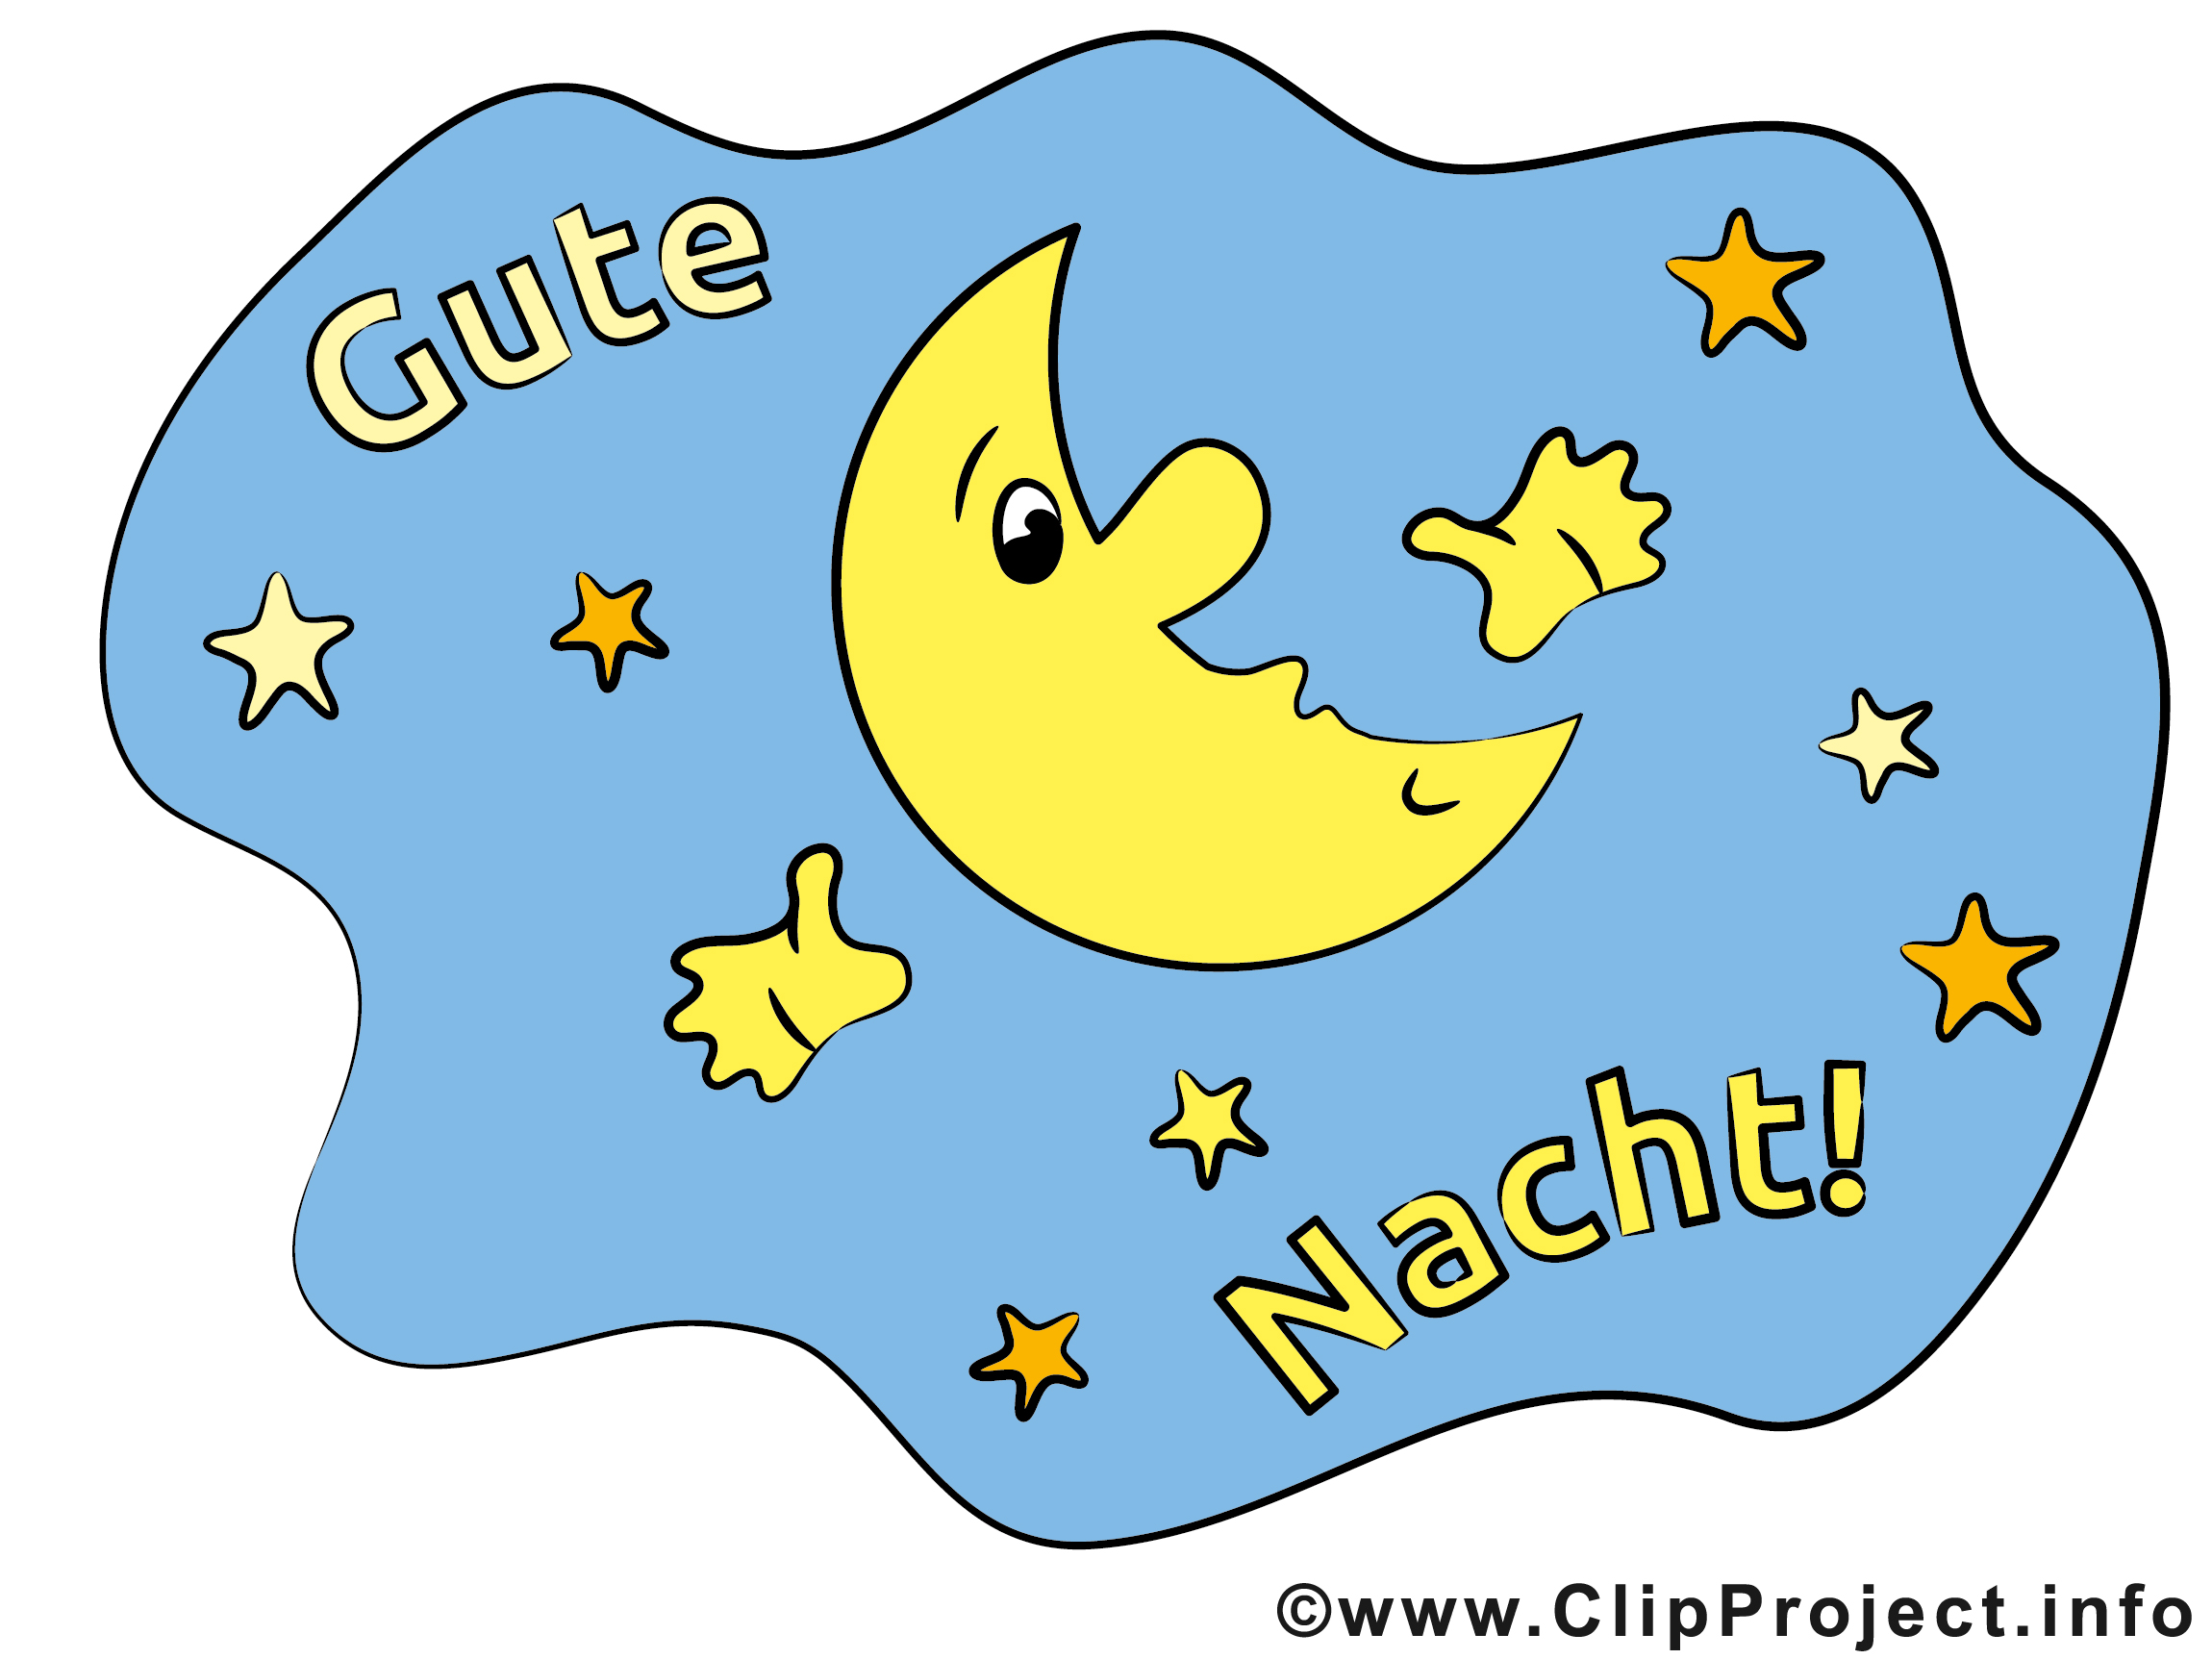 Clipart gute nacht picture black and white stock Gute nacht clipart bilder - ClipartFest picture black and white stock